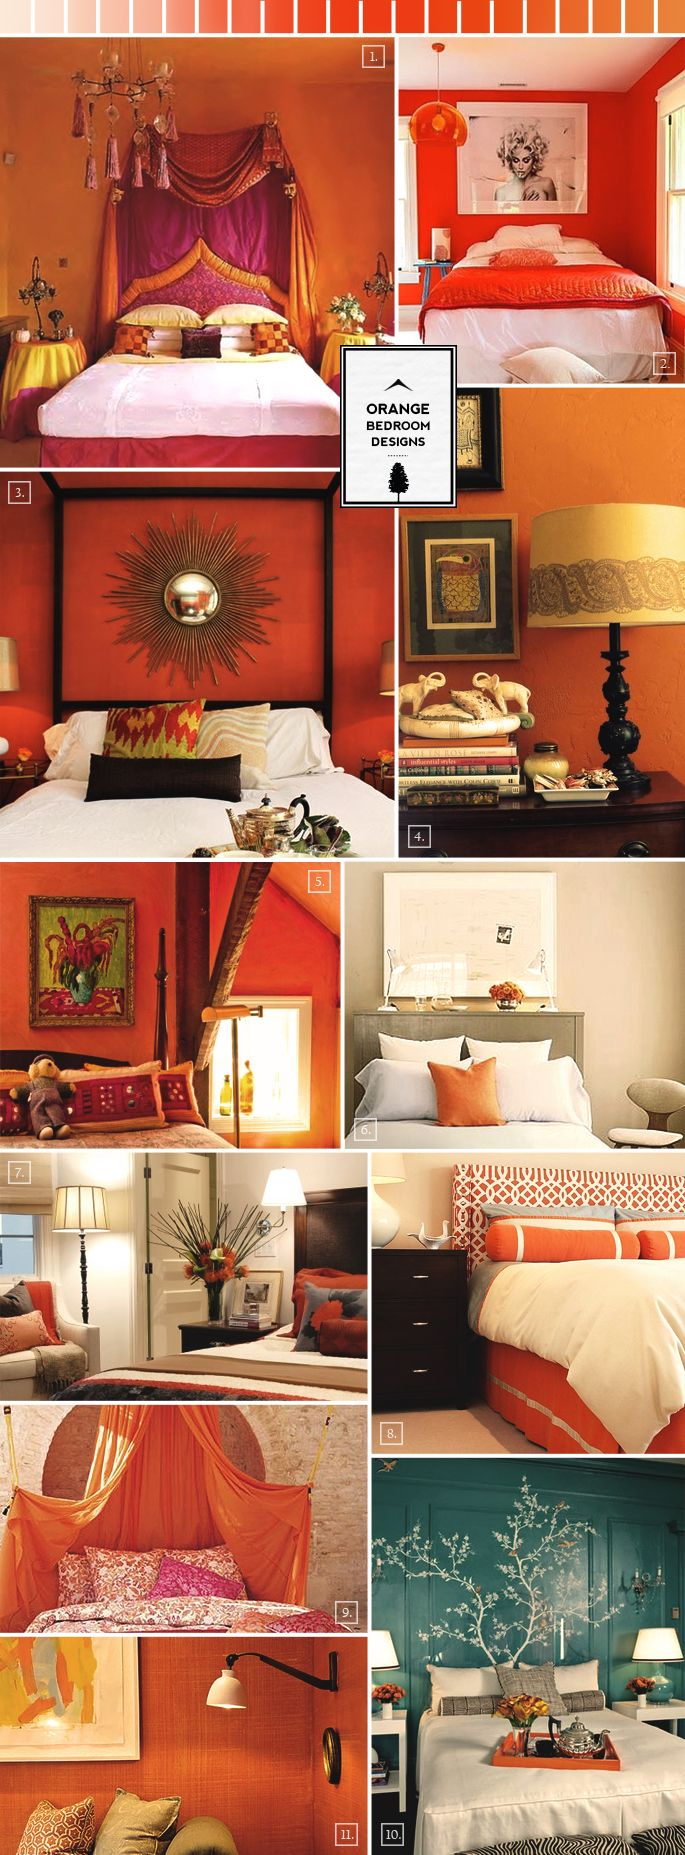 Design Tips And Pictures For Designing A Bedroom In Orange